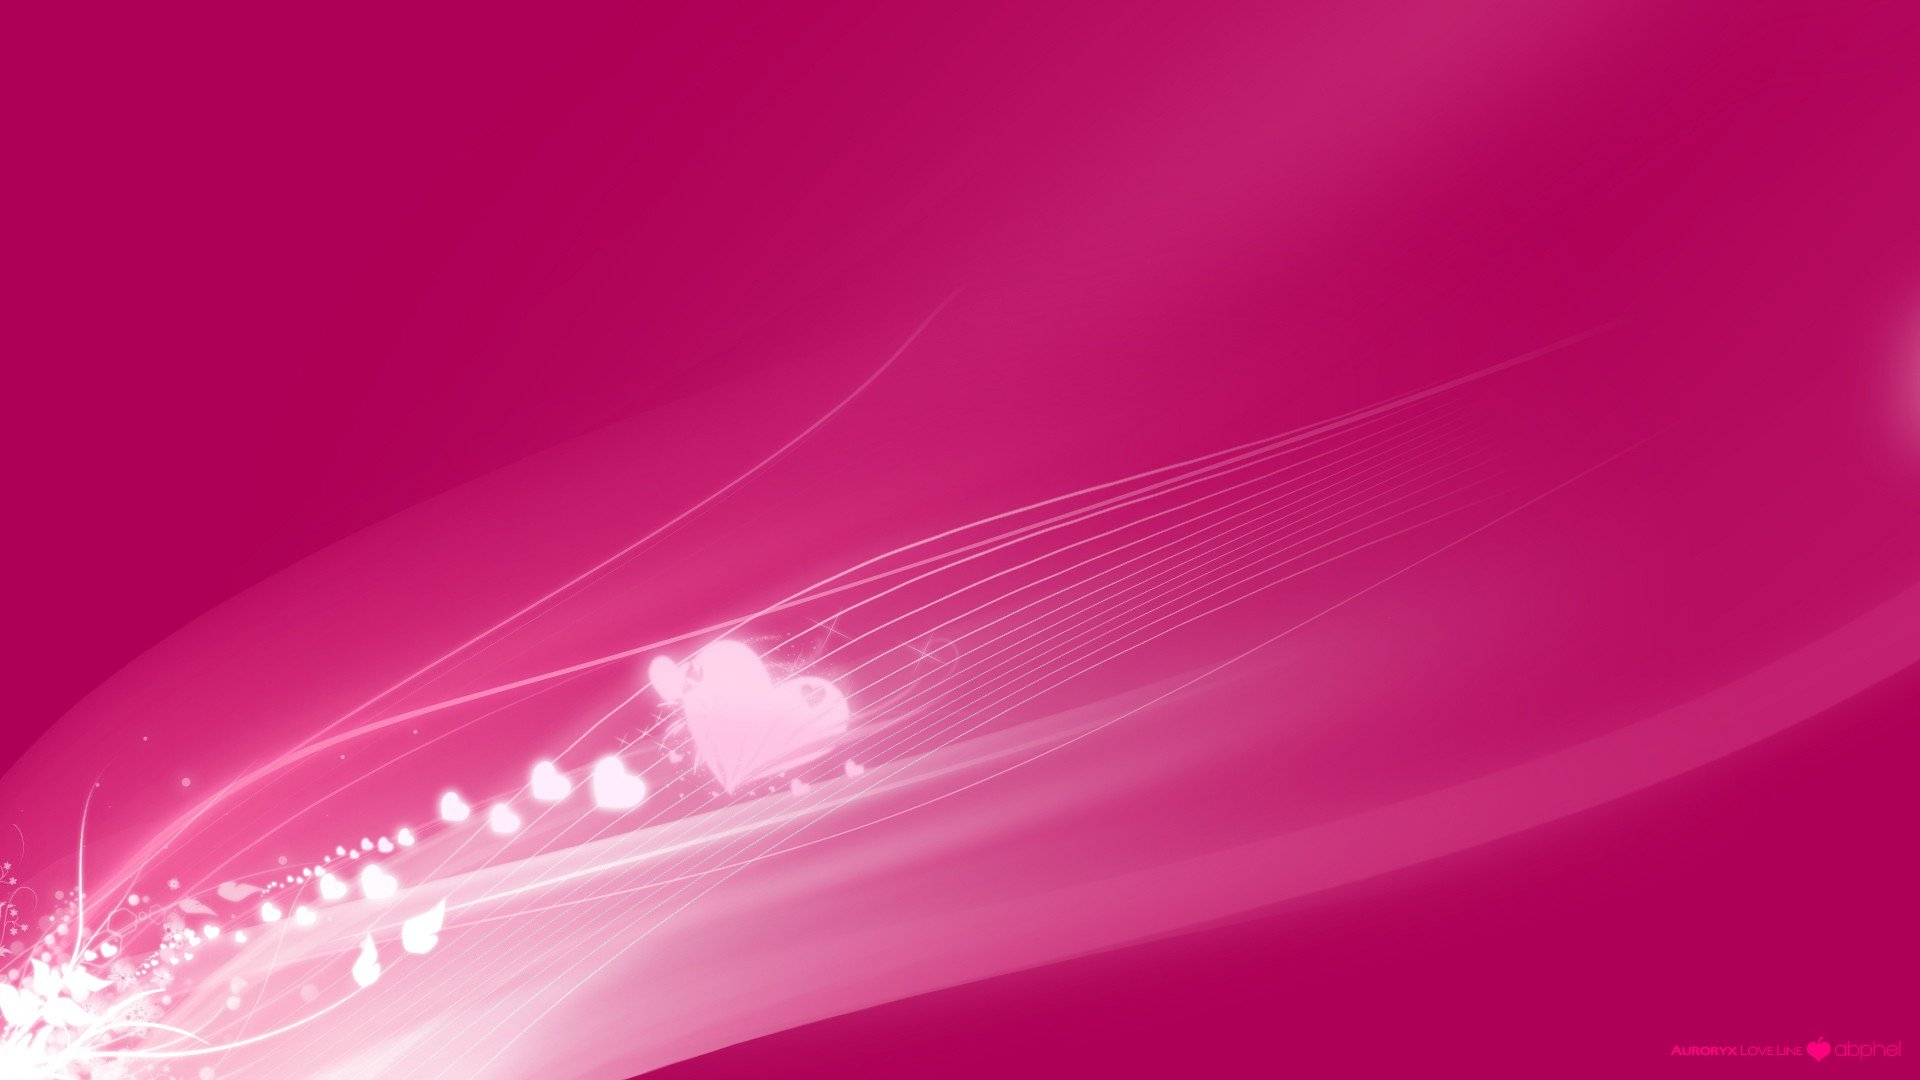 Pink Love Wallpaper: Love Pink Background